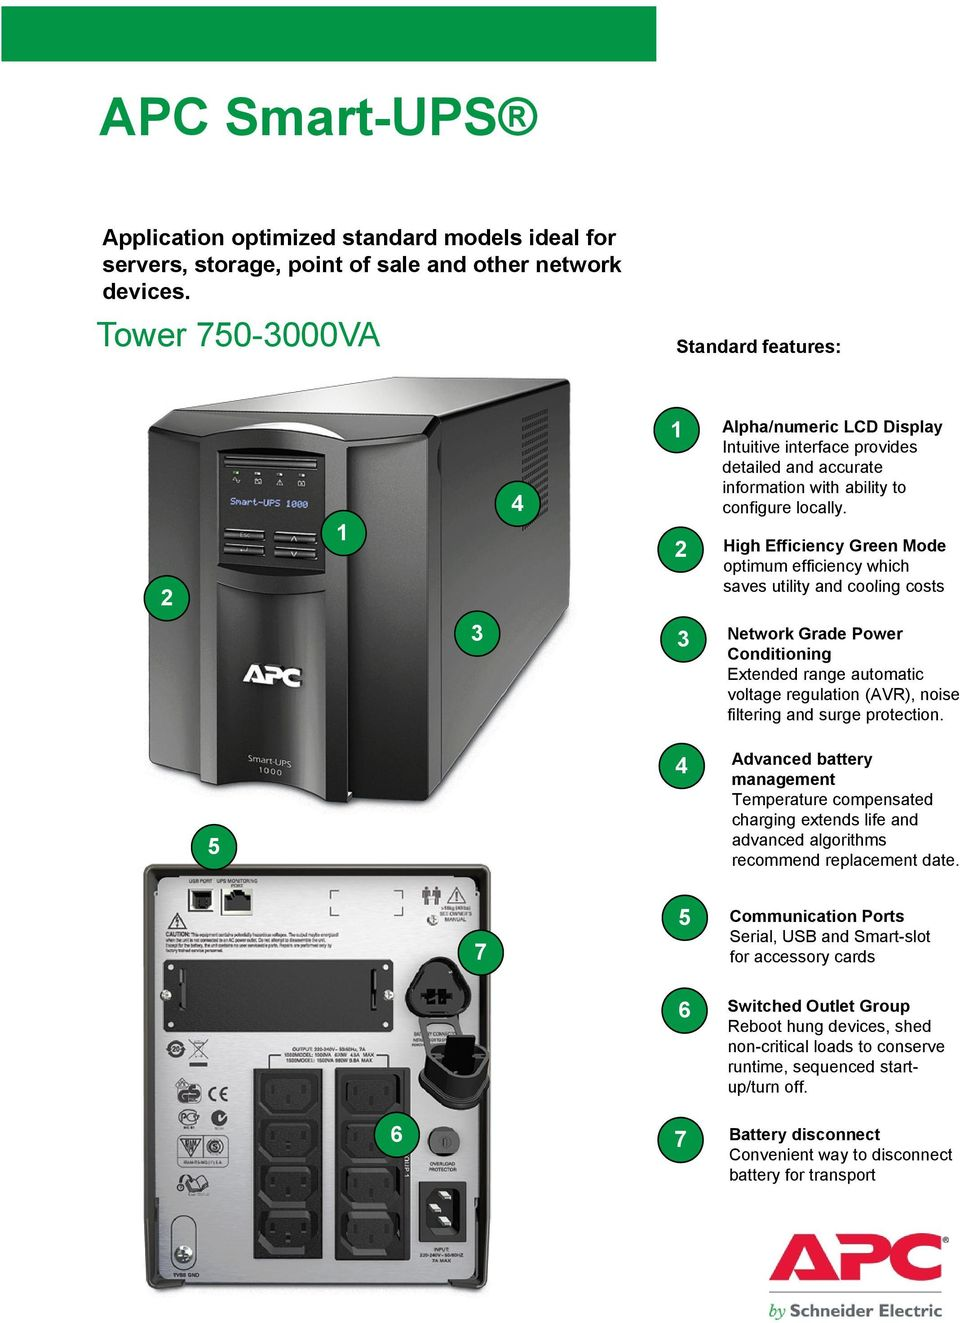 High Efficiency Green Mode optimum efficiency which saves utility and cooling costs Network Grade Power Conditioning Extended range automatic voltage regulation (AVR), noise filtering and surge